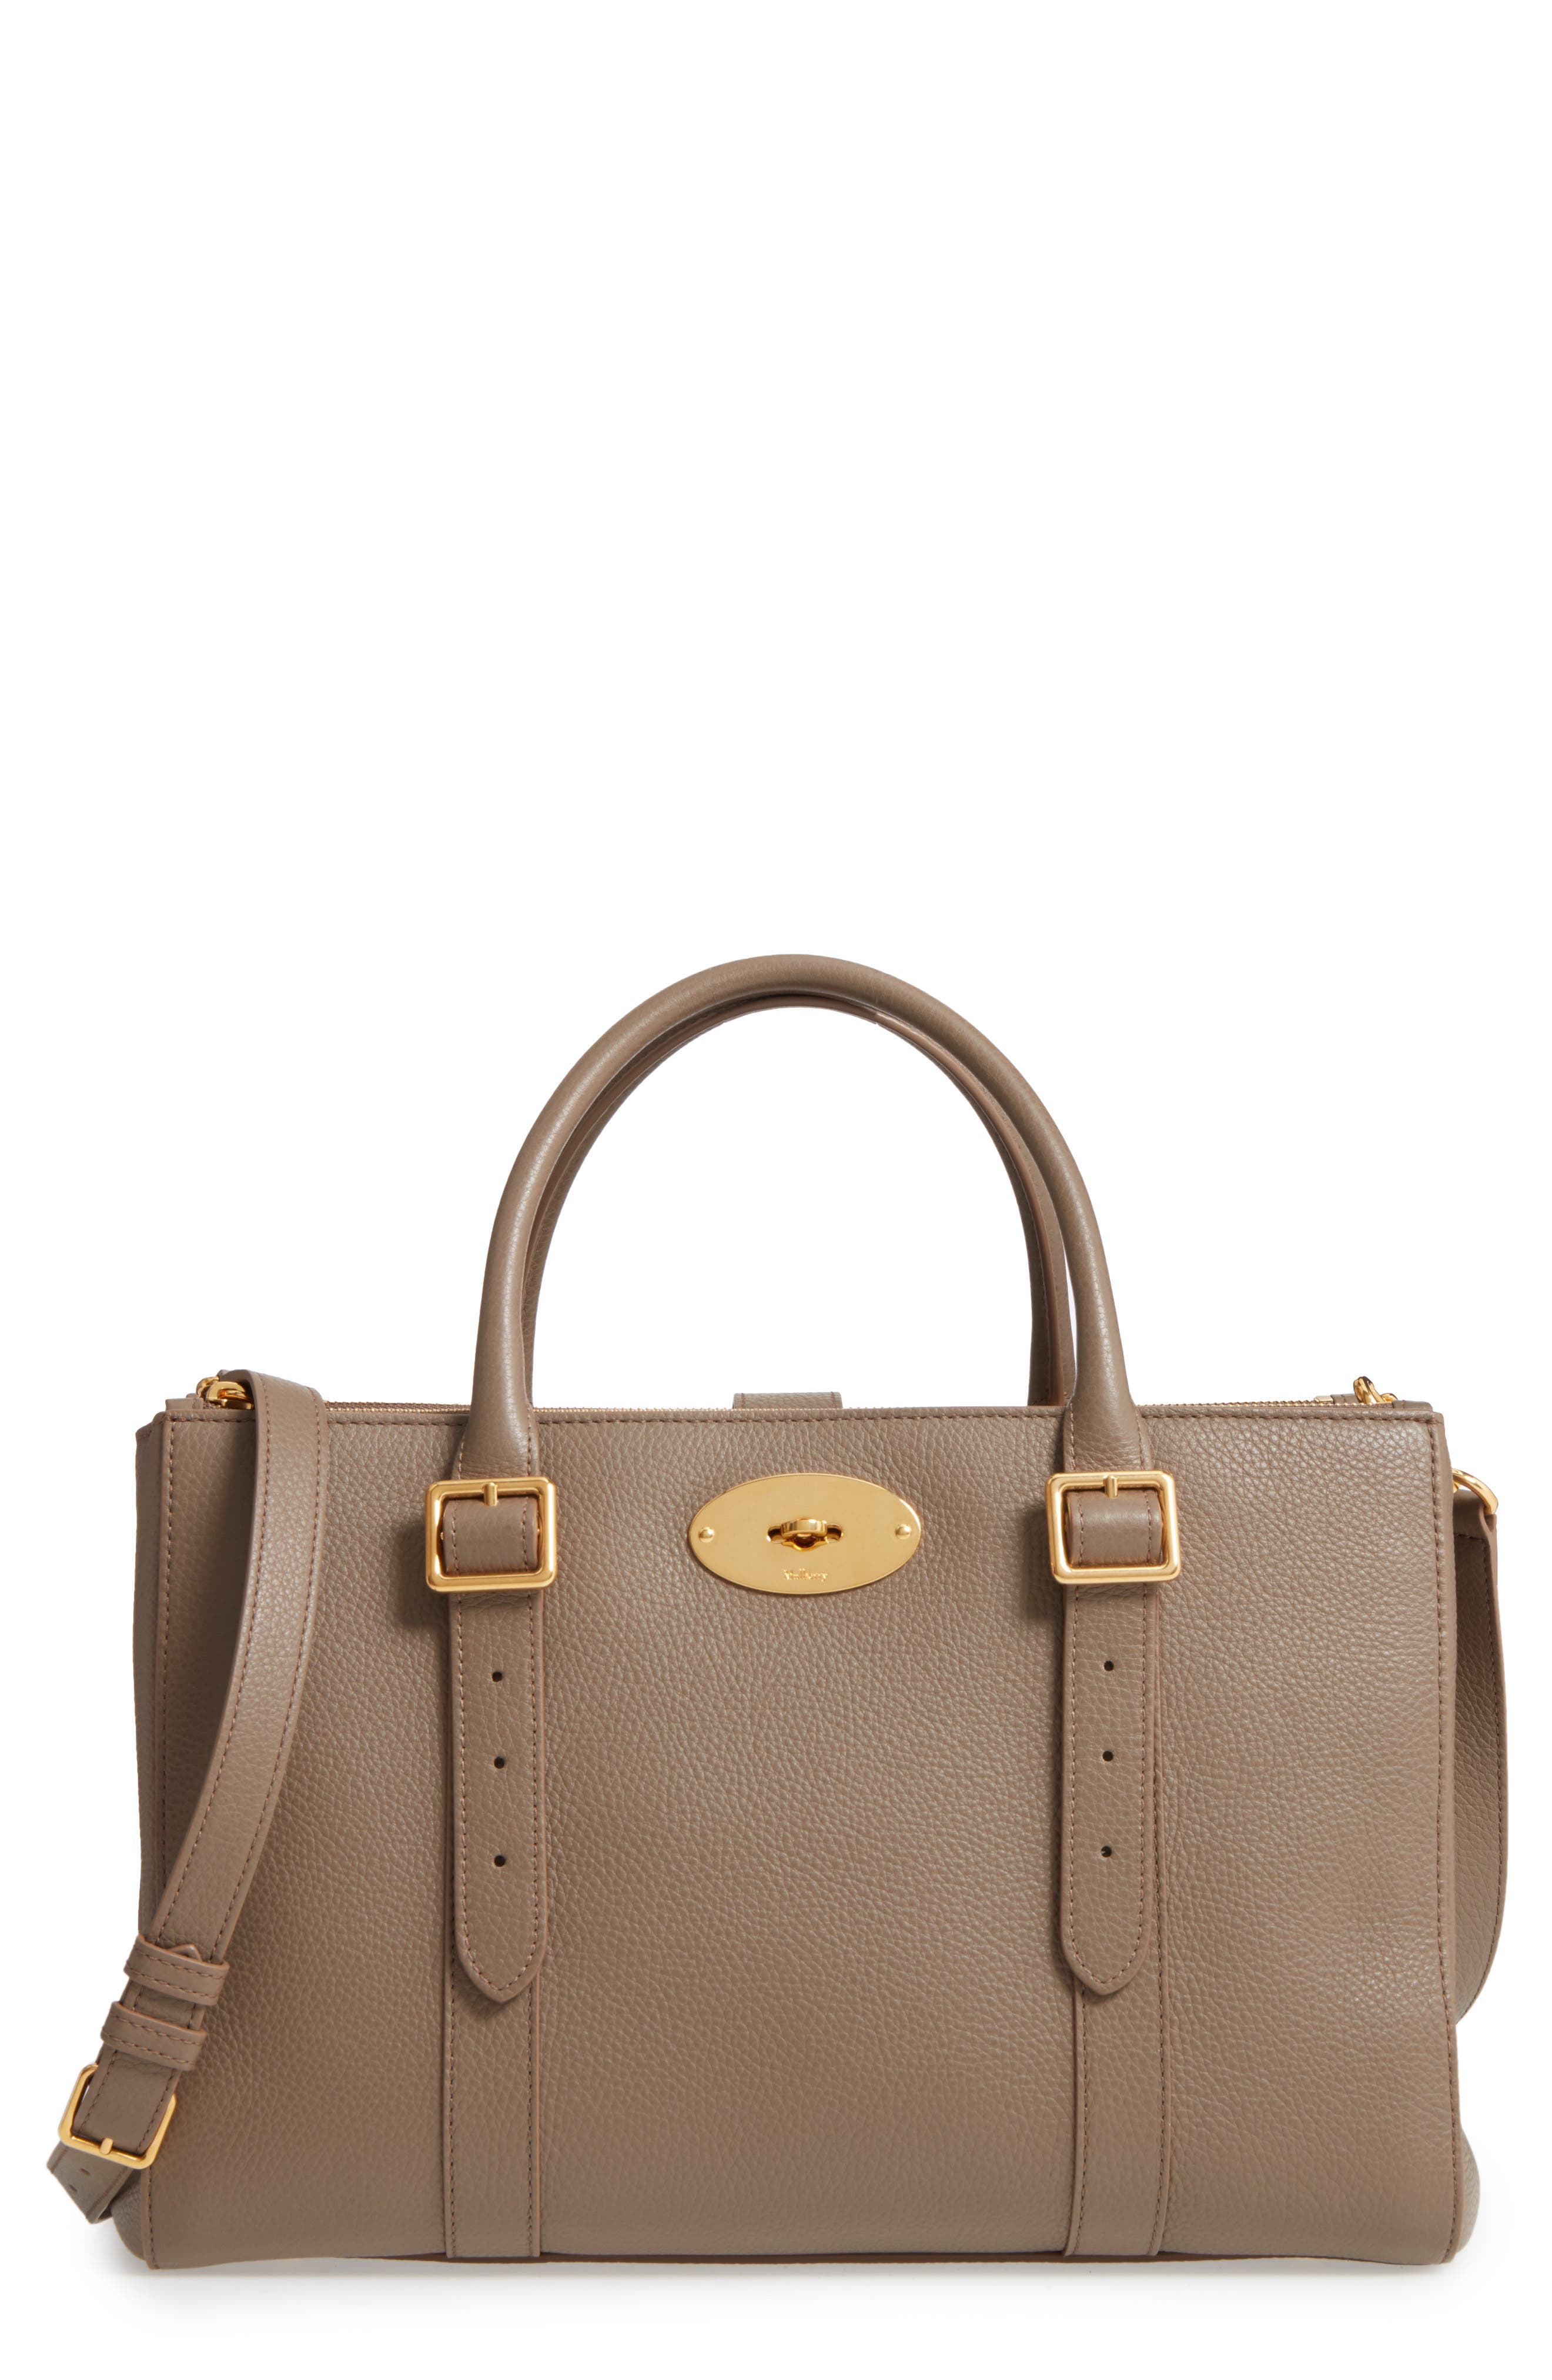 Bayswater Double Zip Leather Satchel,                             Main thumbnail 1, color,                             Clay